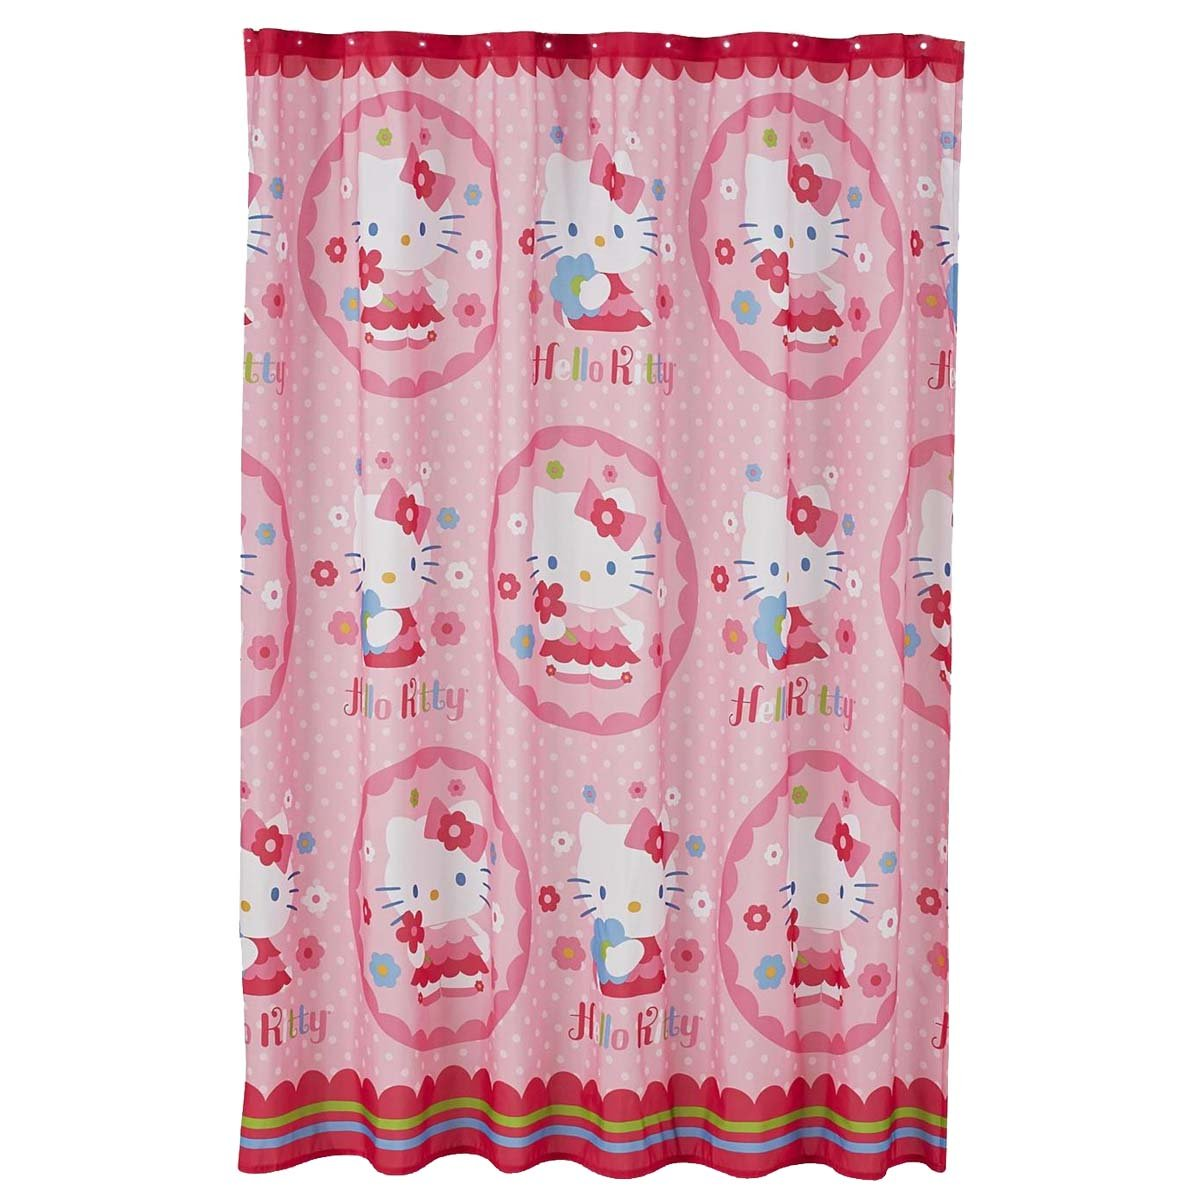 b jtyscoo wallpaper hello kitty bathroom curtain of laptop hd pics fabric shower curtain by sanrio home